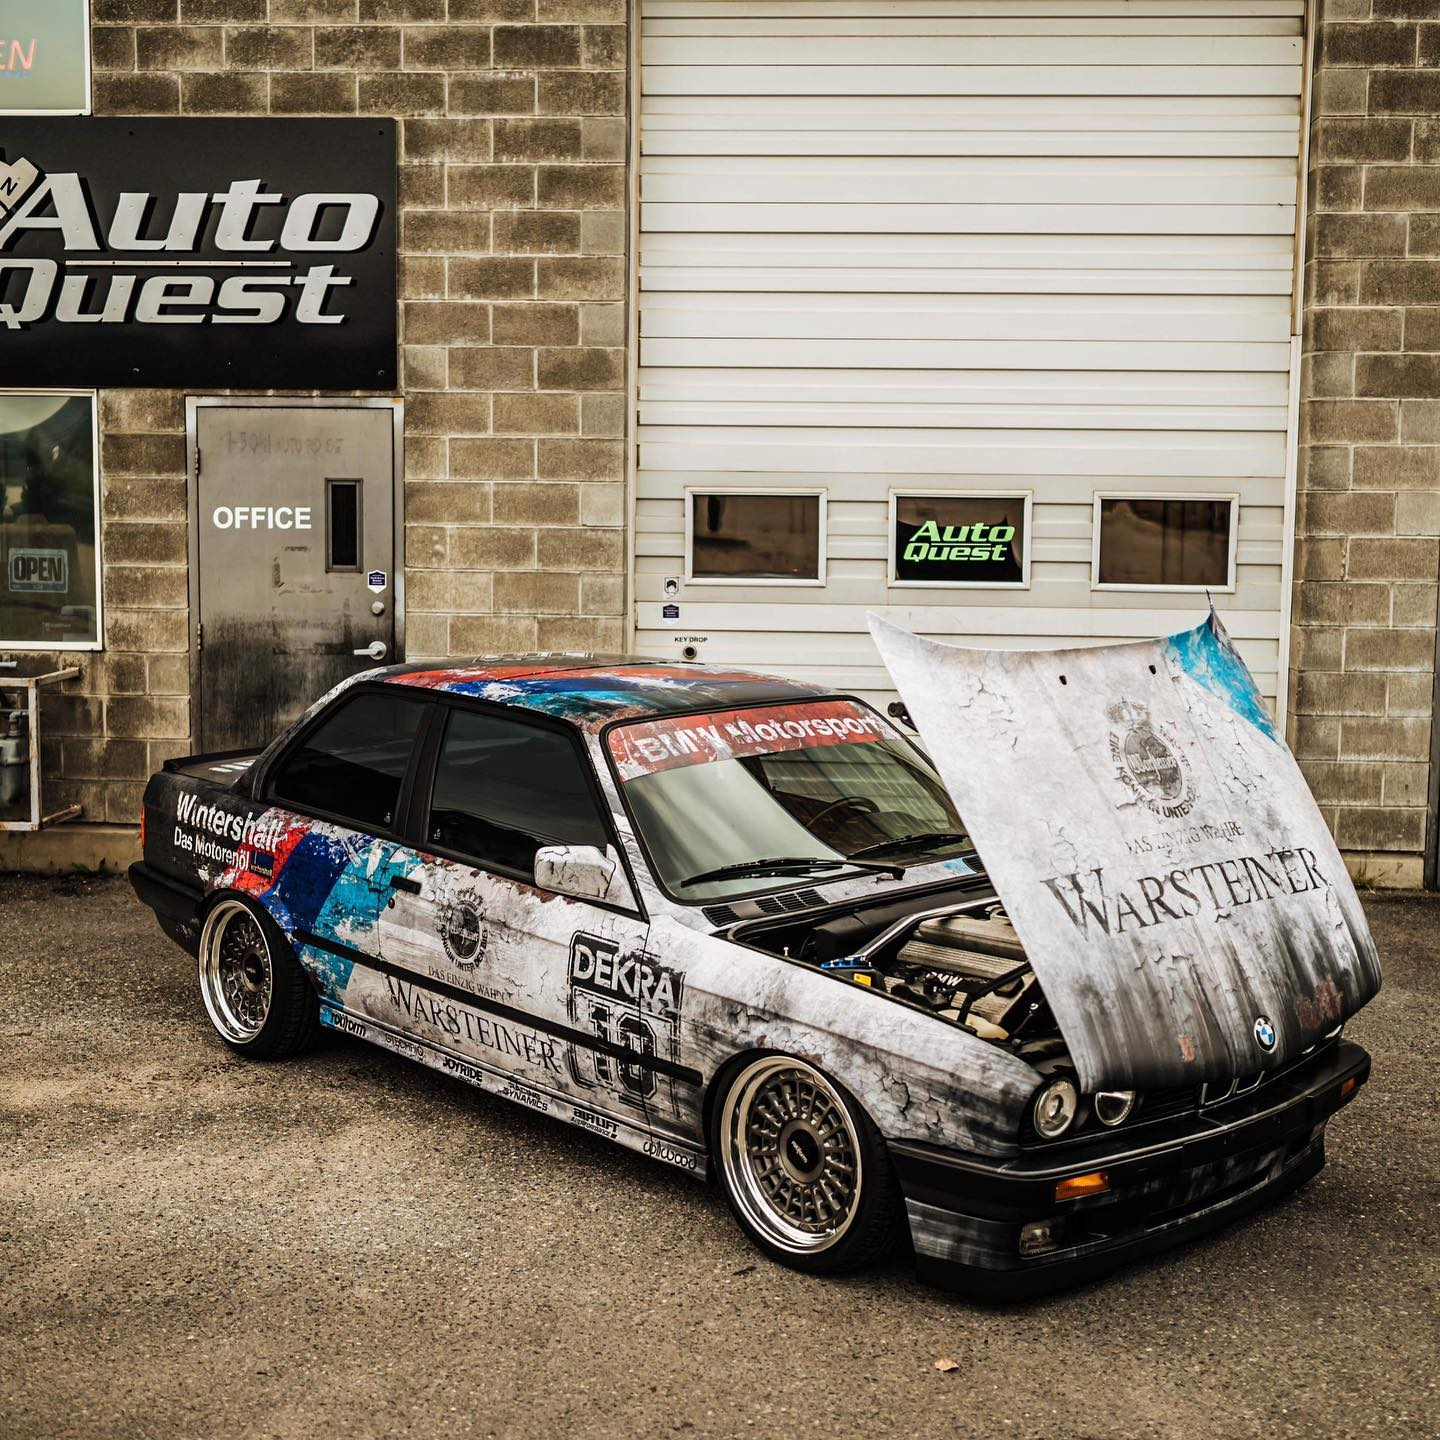 JOYRIDE BMW E30 DIRTY THIRTY WRAP DESIGN PROJECT 2